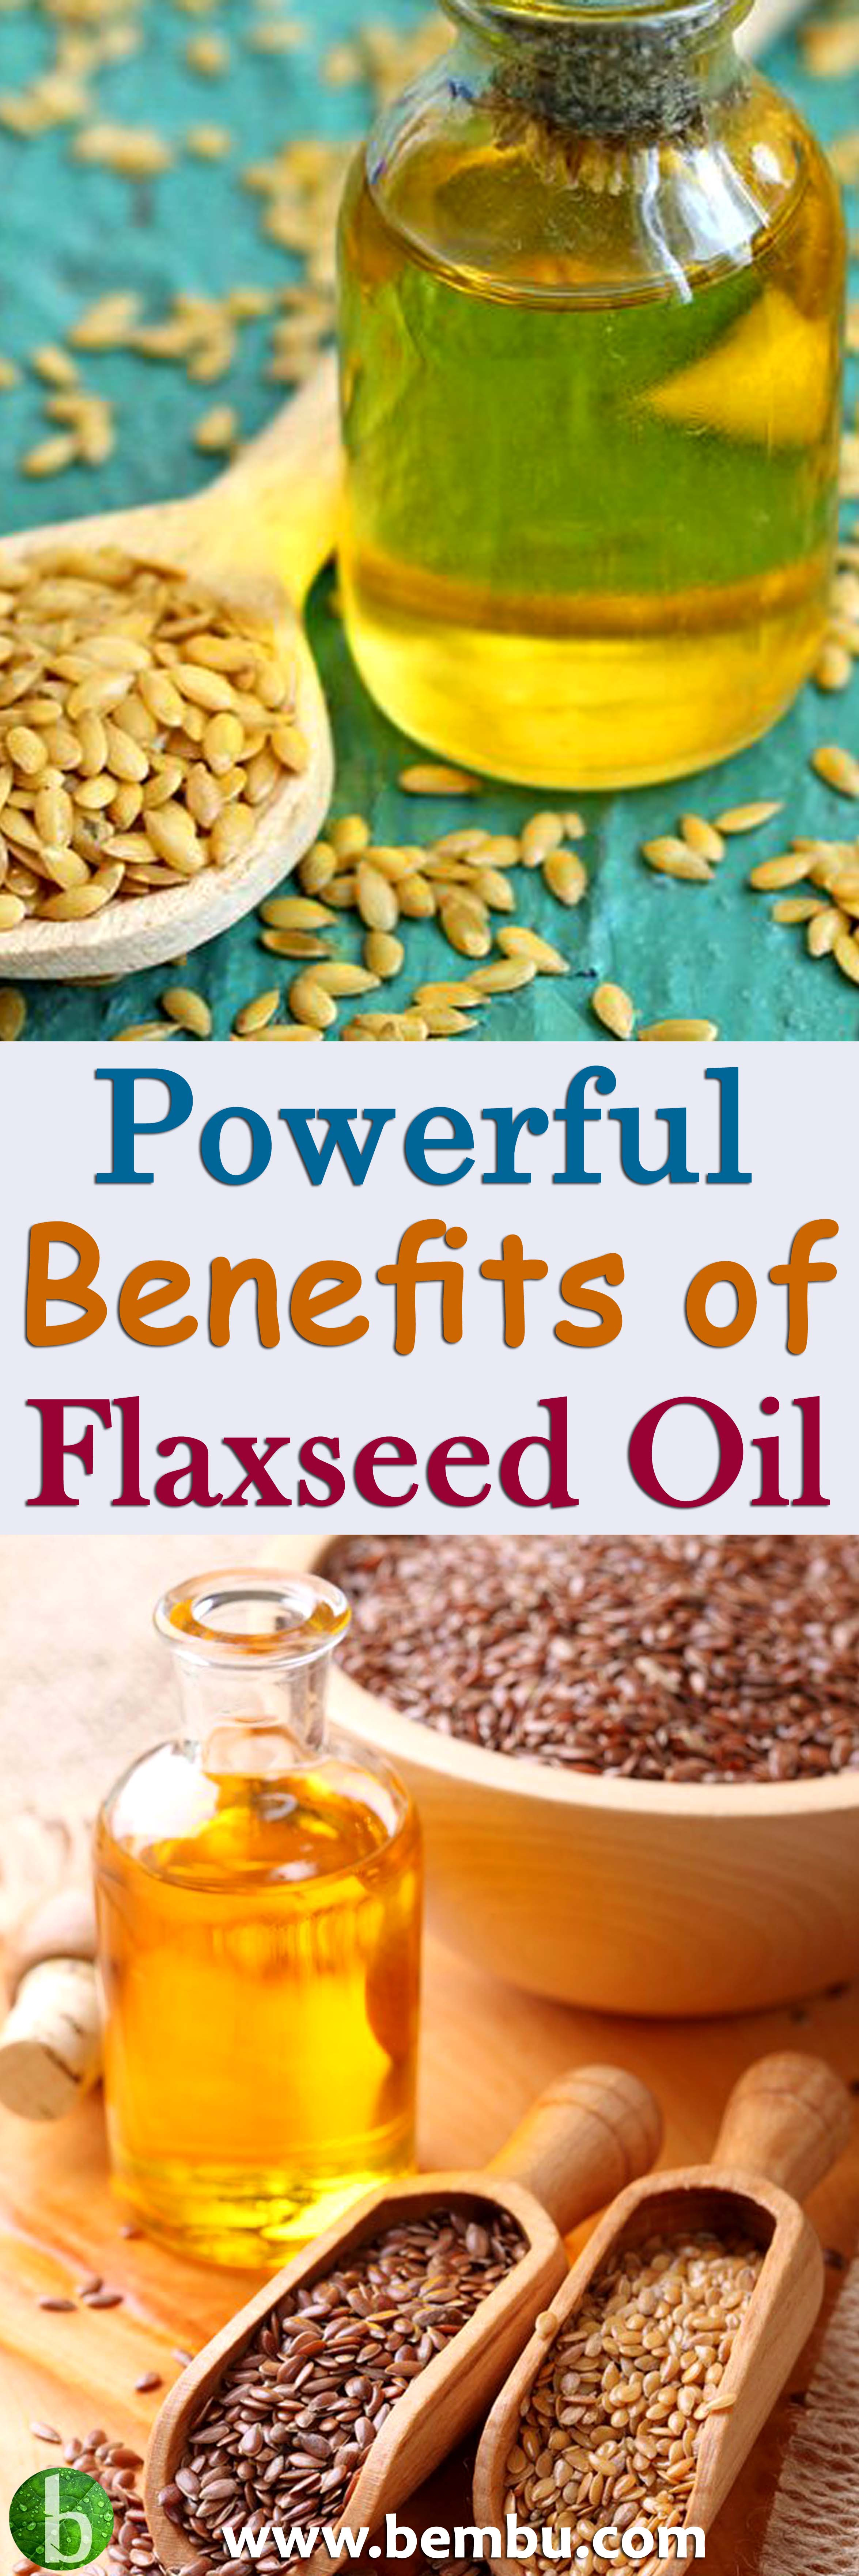 6 Powerful Benefits of Flaxseed Oil (With images ...